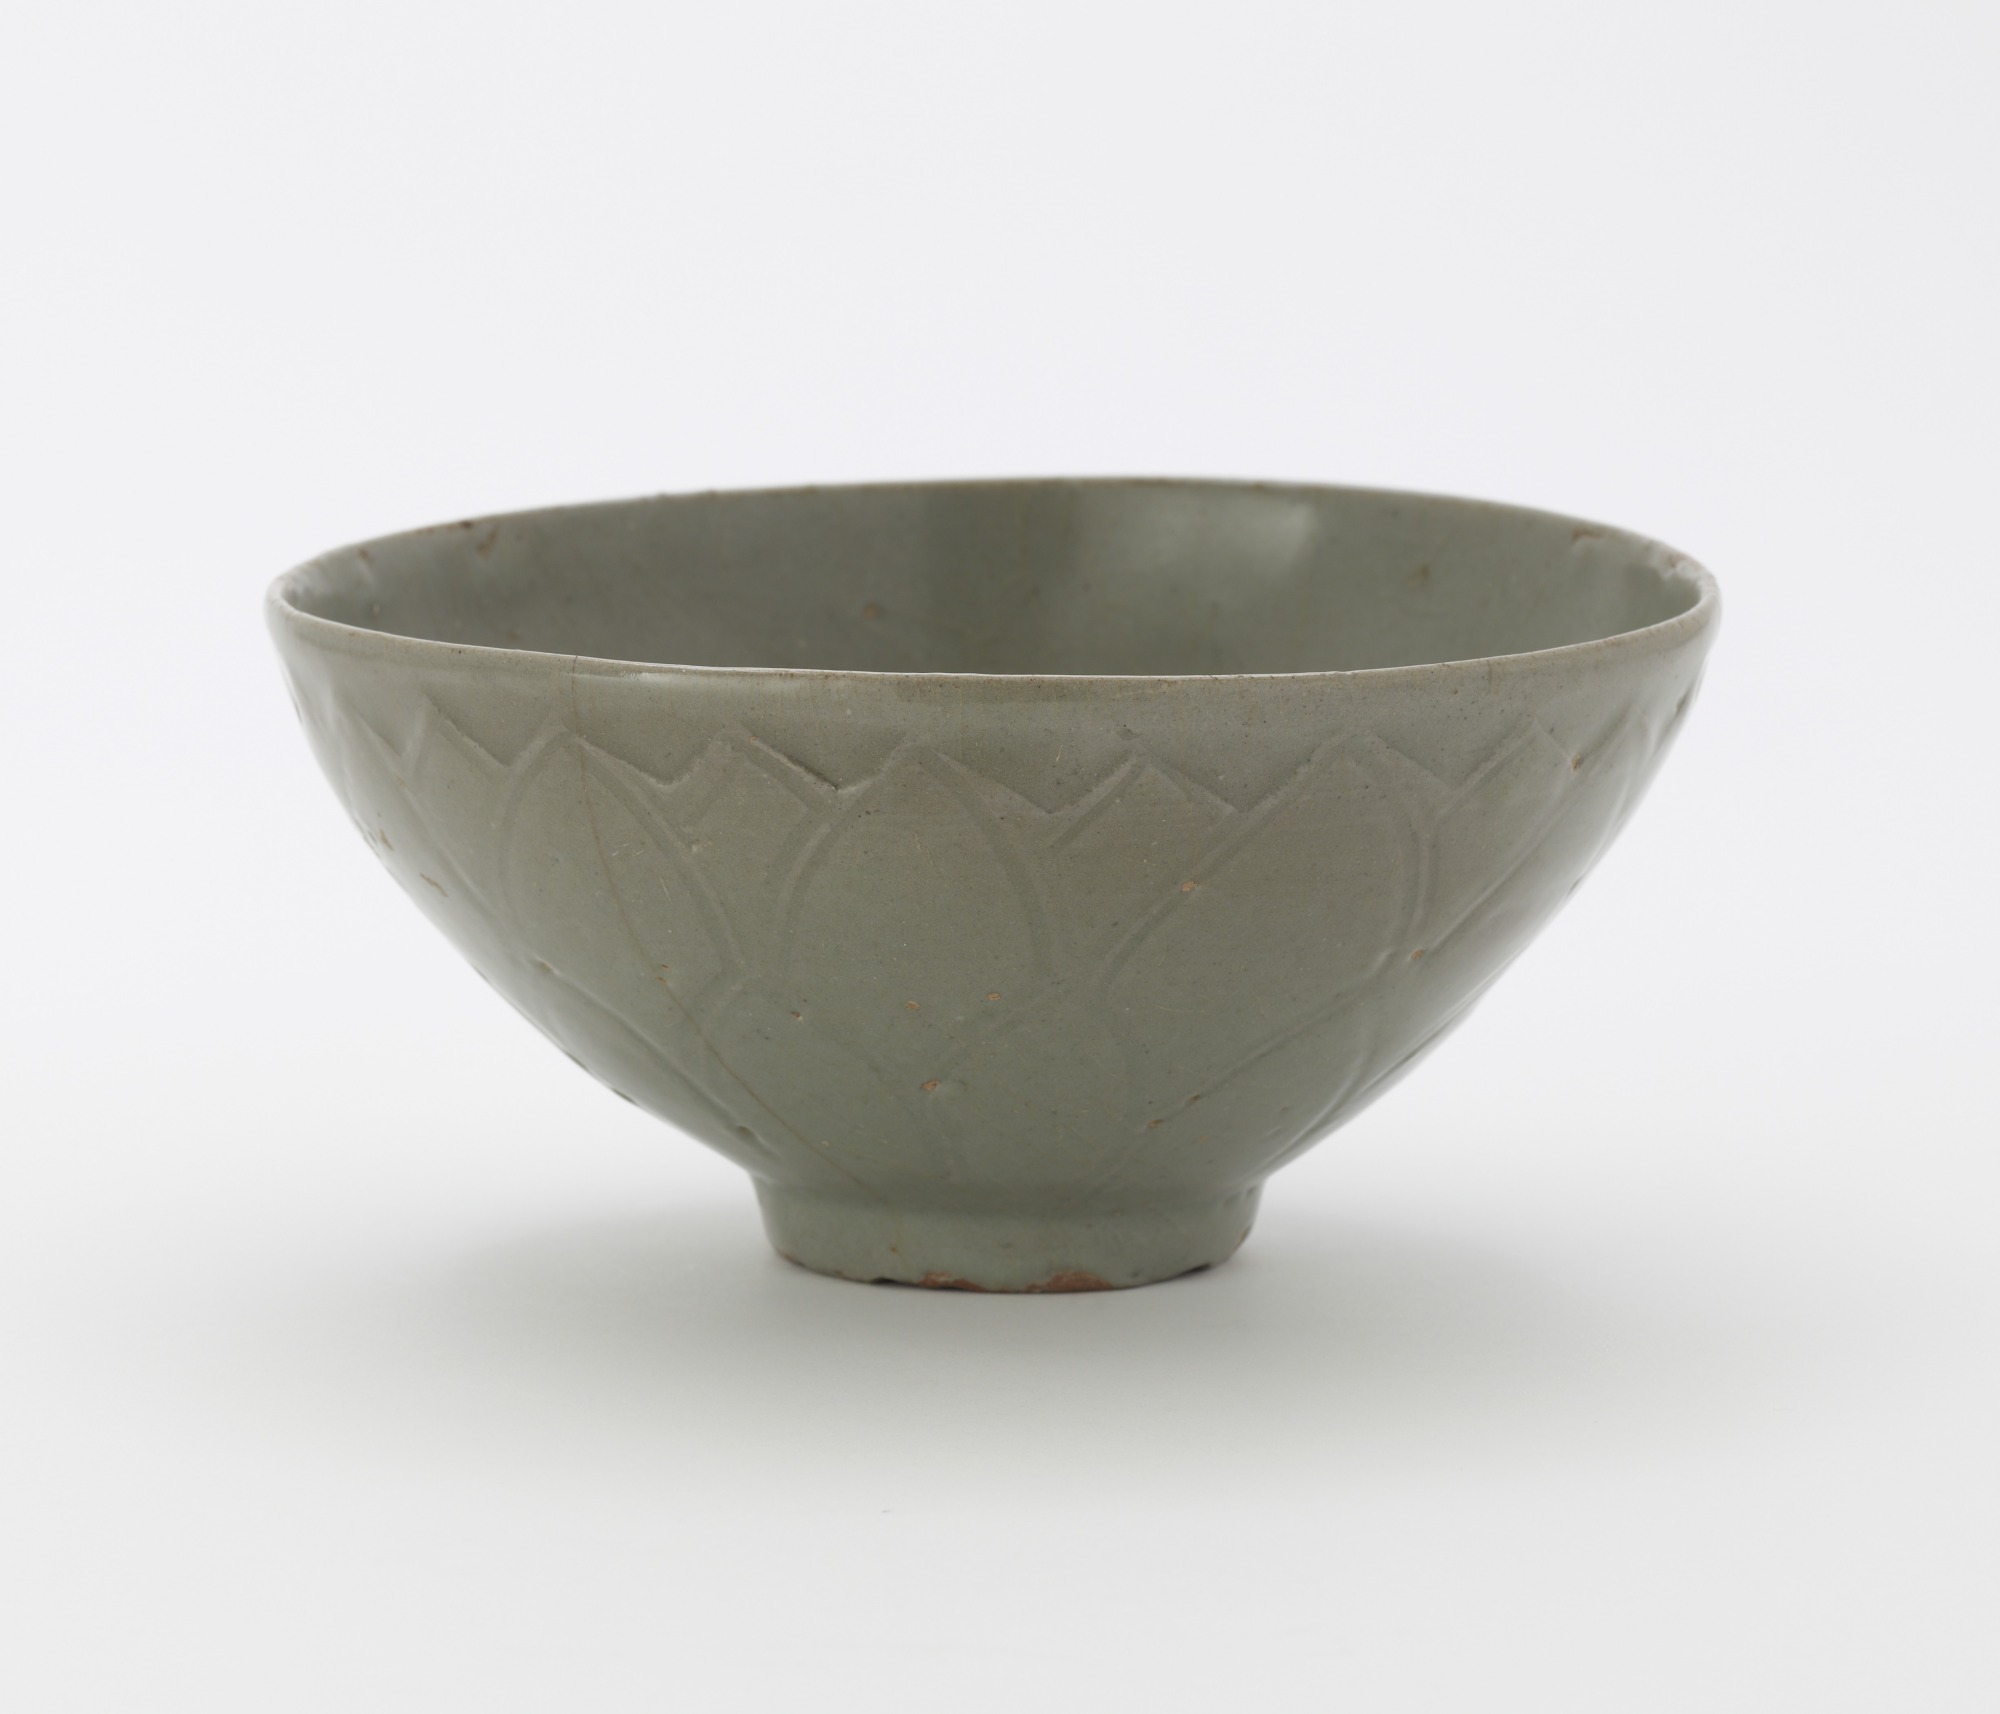 Bowl with carved and incised lotus decoration, profile